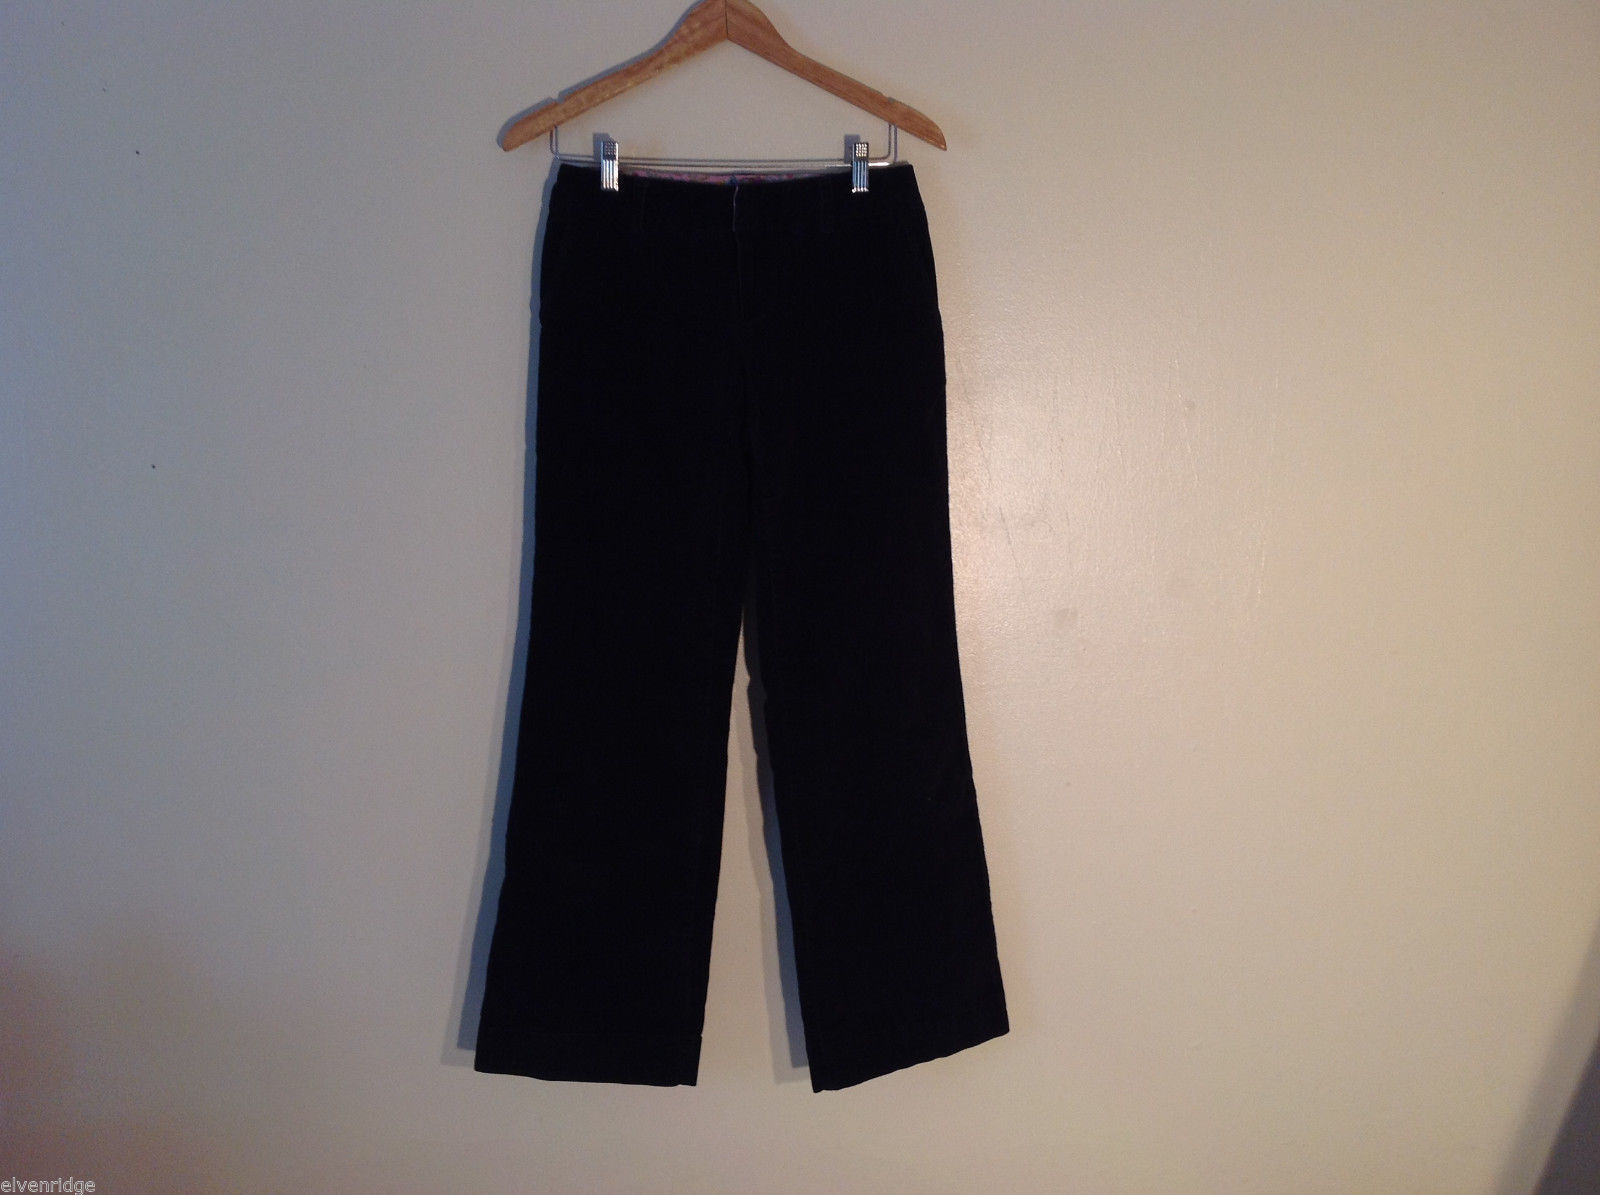 IZOD Women's Size 4 Black Pants Stretchy Velour-Like Pleated Front Straight Leg